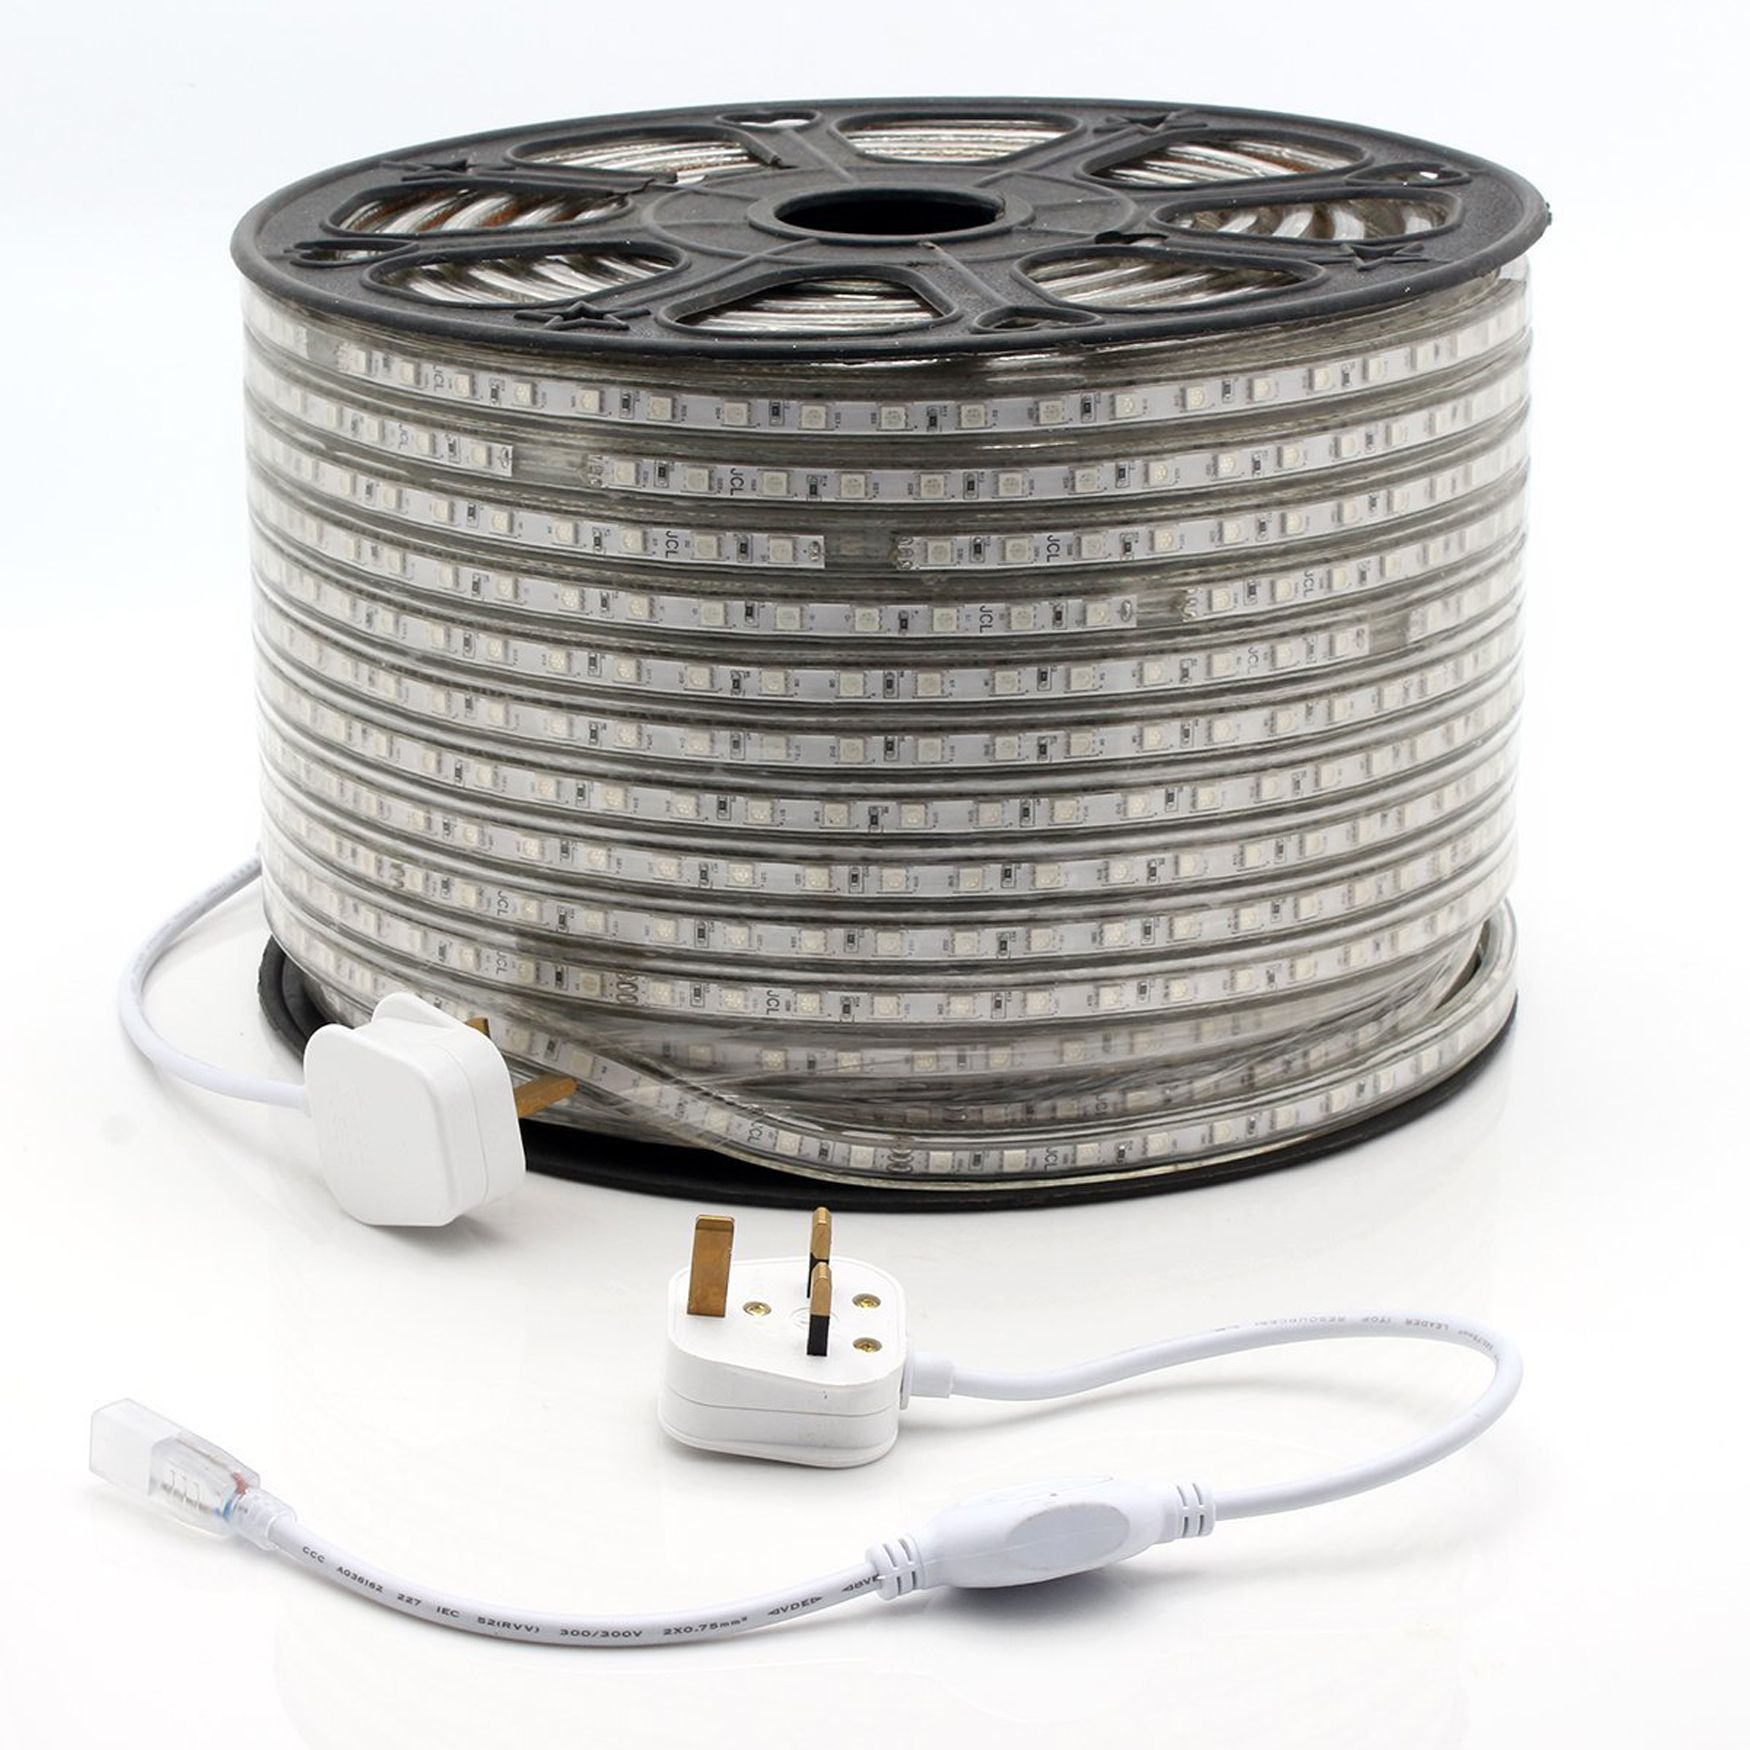 220v 240v Mains Voltage Led Strip Lights Rope Lights Ip68